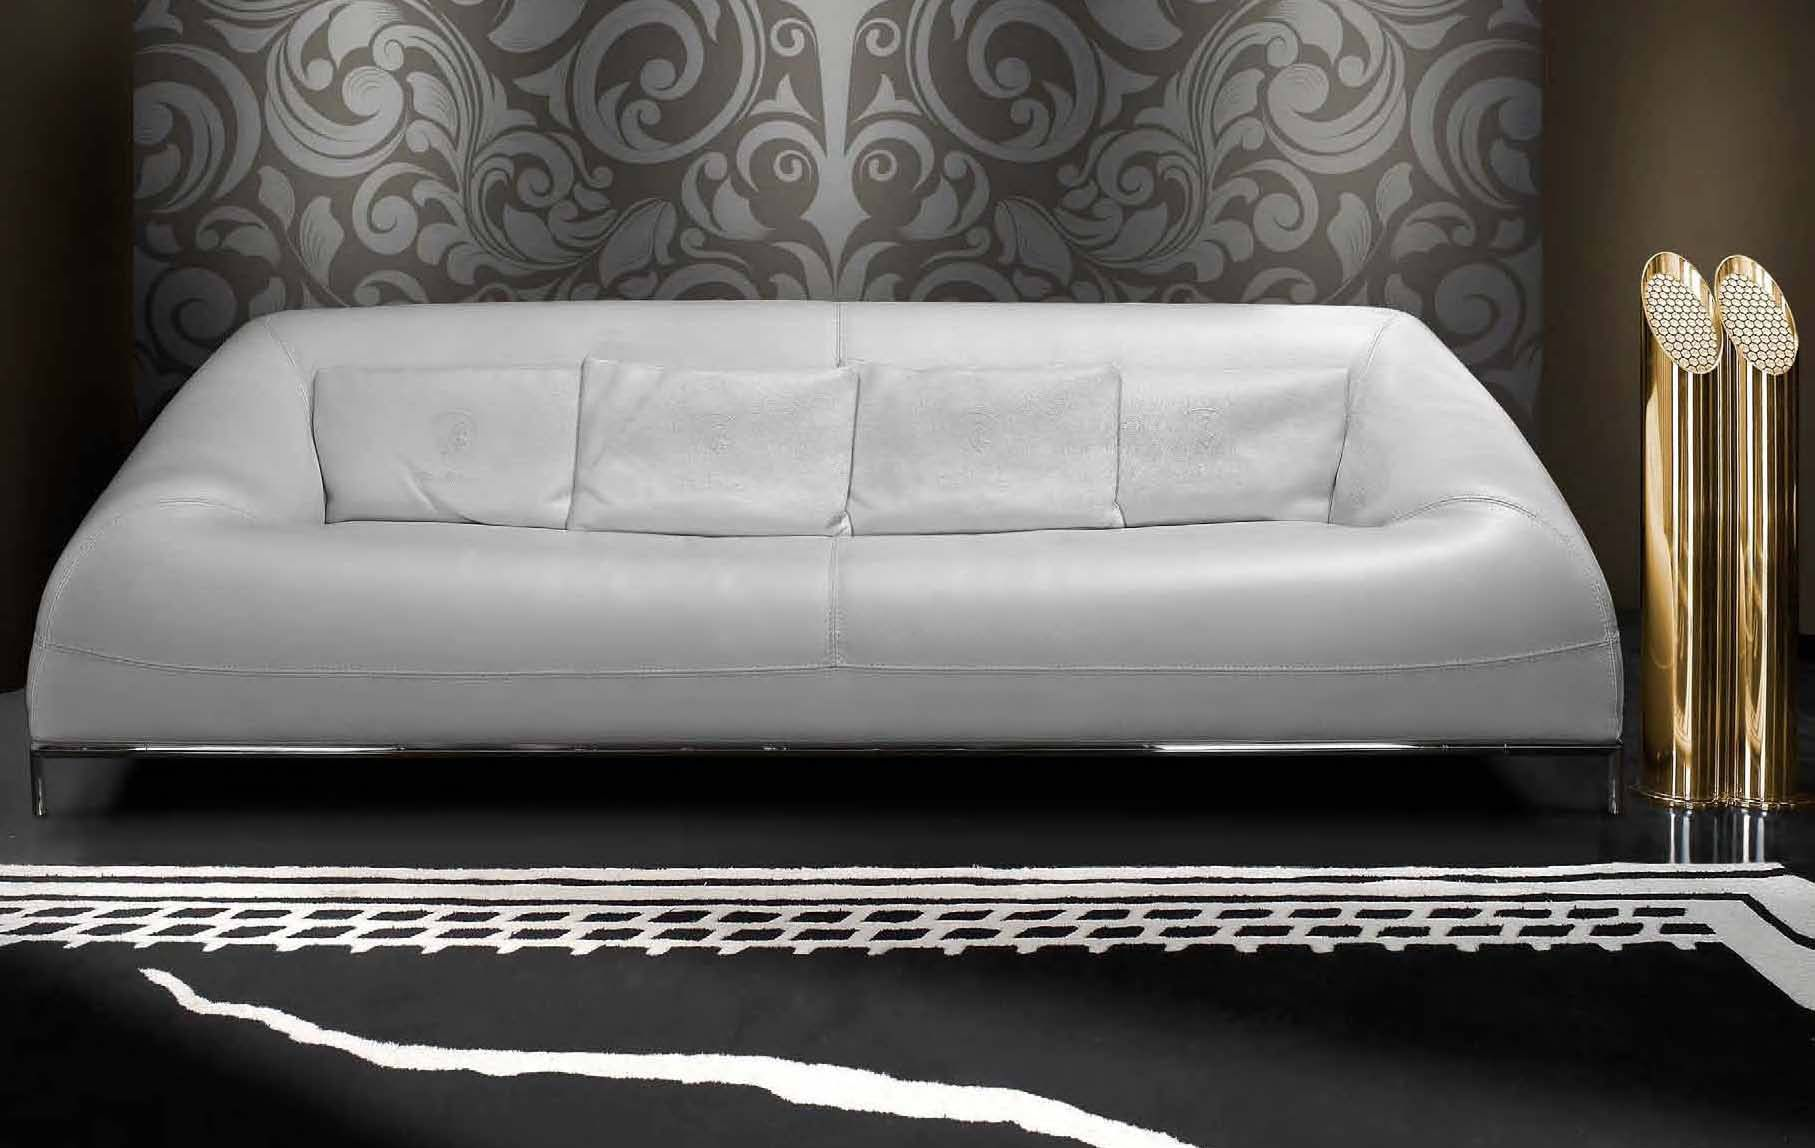 vip sofas luxuri se sofas moderne beste seriedie m bel. Black Bedroom Furniture Sets. Home Design Ideas